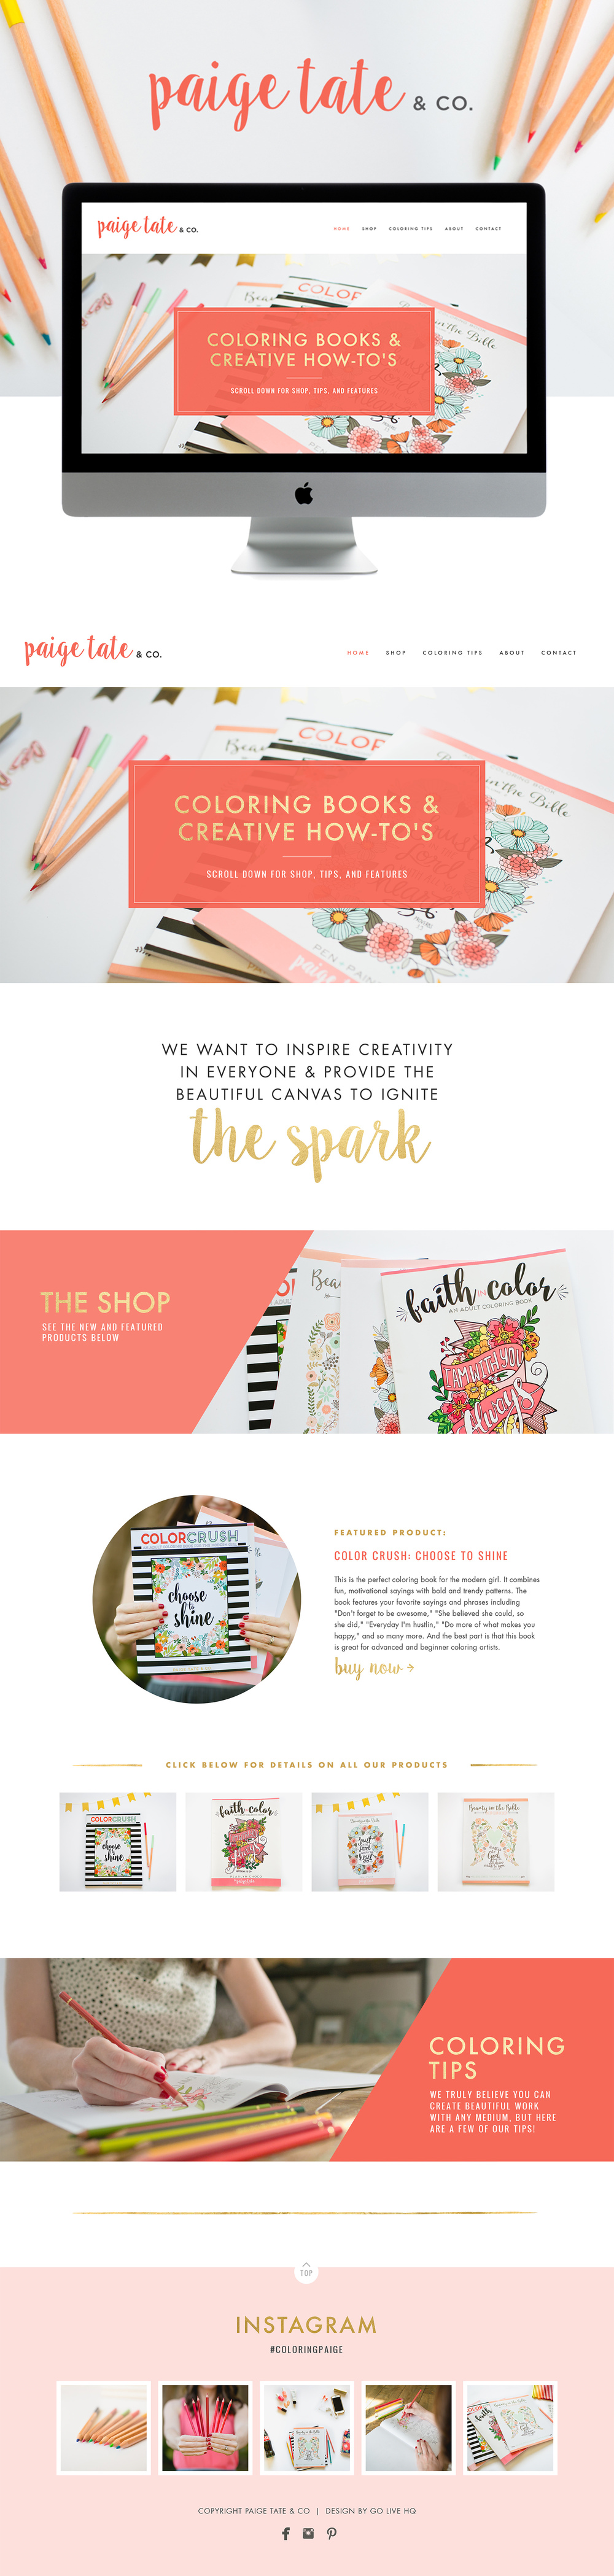 Kate Spade Inspired Squarespace Website Design | Designed by: Go Live HQ